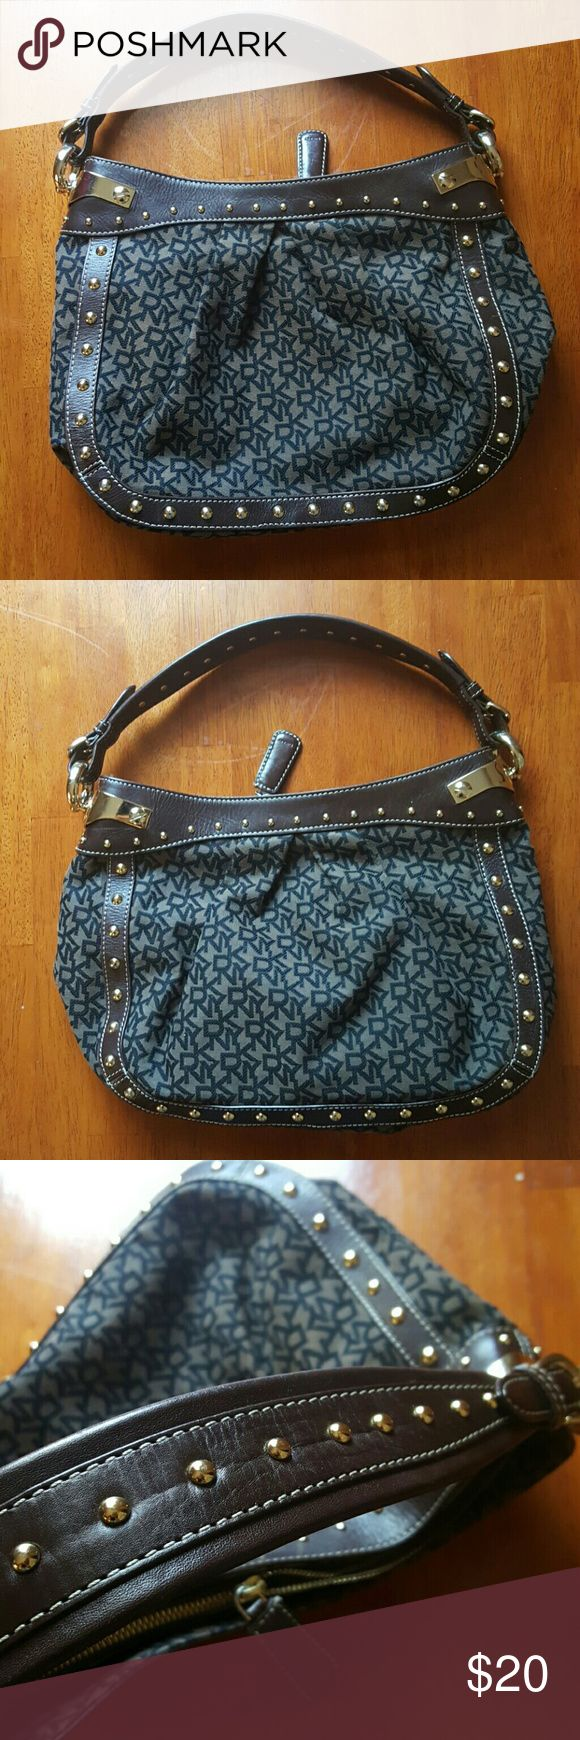 Dkny handbag Brown leather with gold buckle and studs...black dkny signature on bag...in great condition Dkny Bags